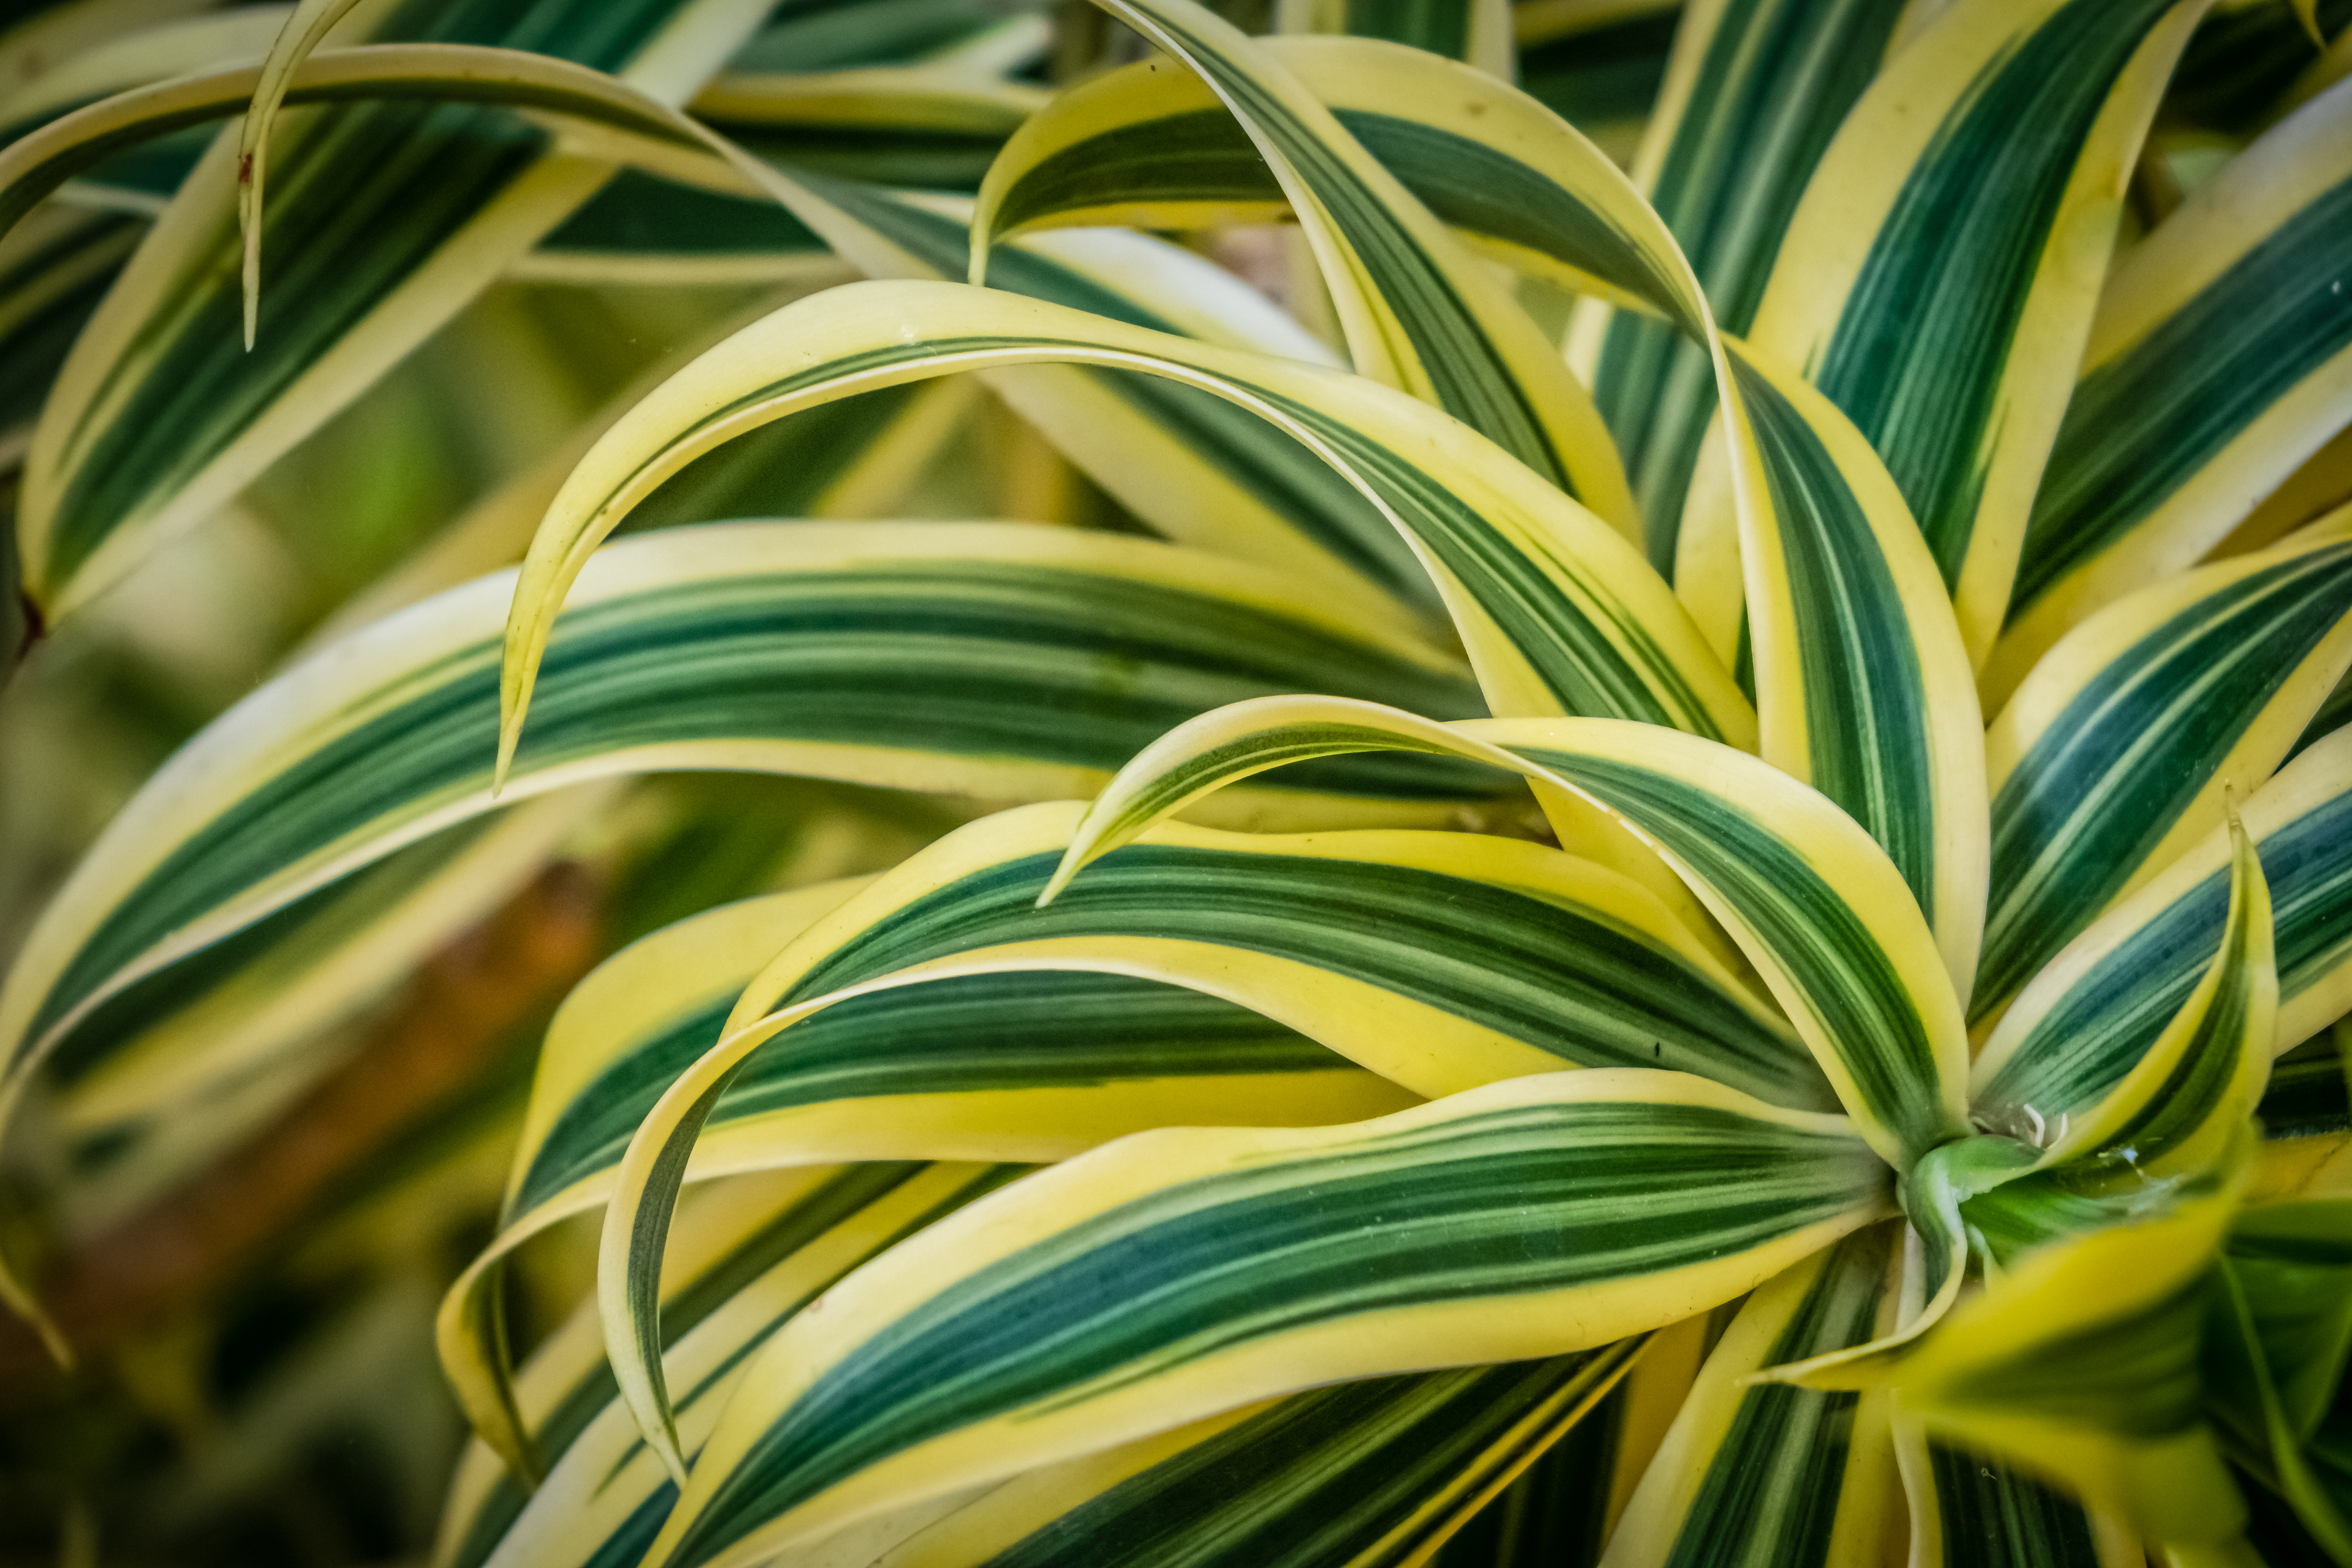 How to Plant Dracaena Outdoors | Home Guides | SF Gate Red Dracaena House Plant on red bonsai plant, red fittonia plant, red draceane, red dieffenbachia plant, red zinnia plant, cordyline plant, red pothos plant, red calibrachoa plant, red spathiphyllum plant, red ferns plant, red peperomia plant, red caladium plant, red echeveria plant, red dracaena marginata, red edged dracaena, red aphelandra plant, red clivia plant, red sedum plant, red begonia plant, red sansevieria plant,